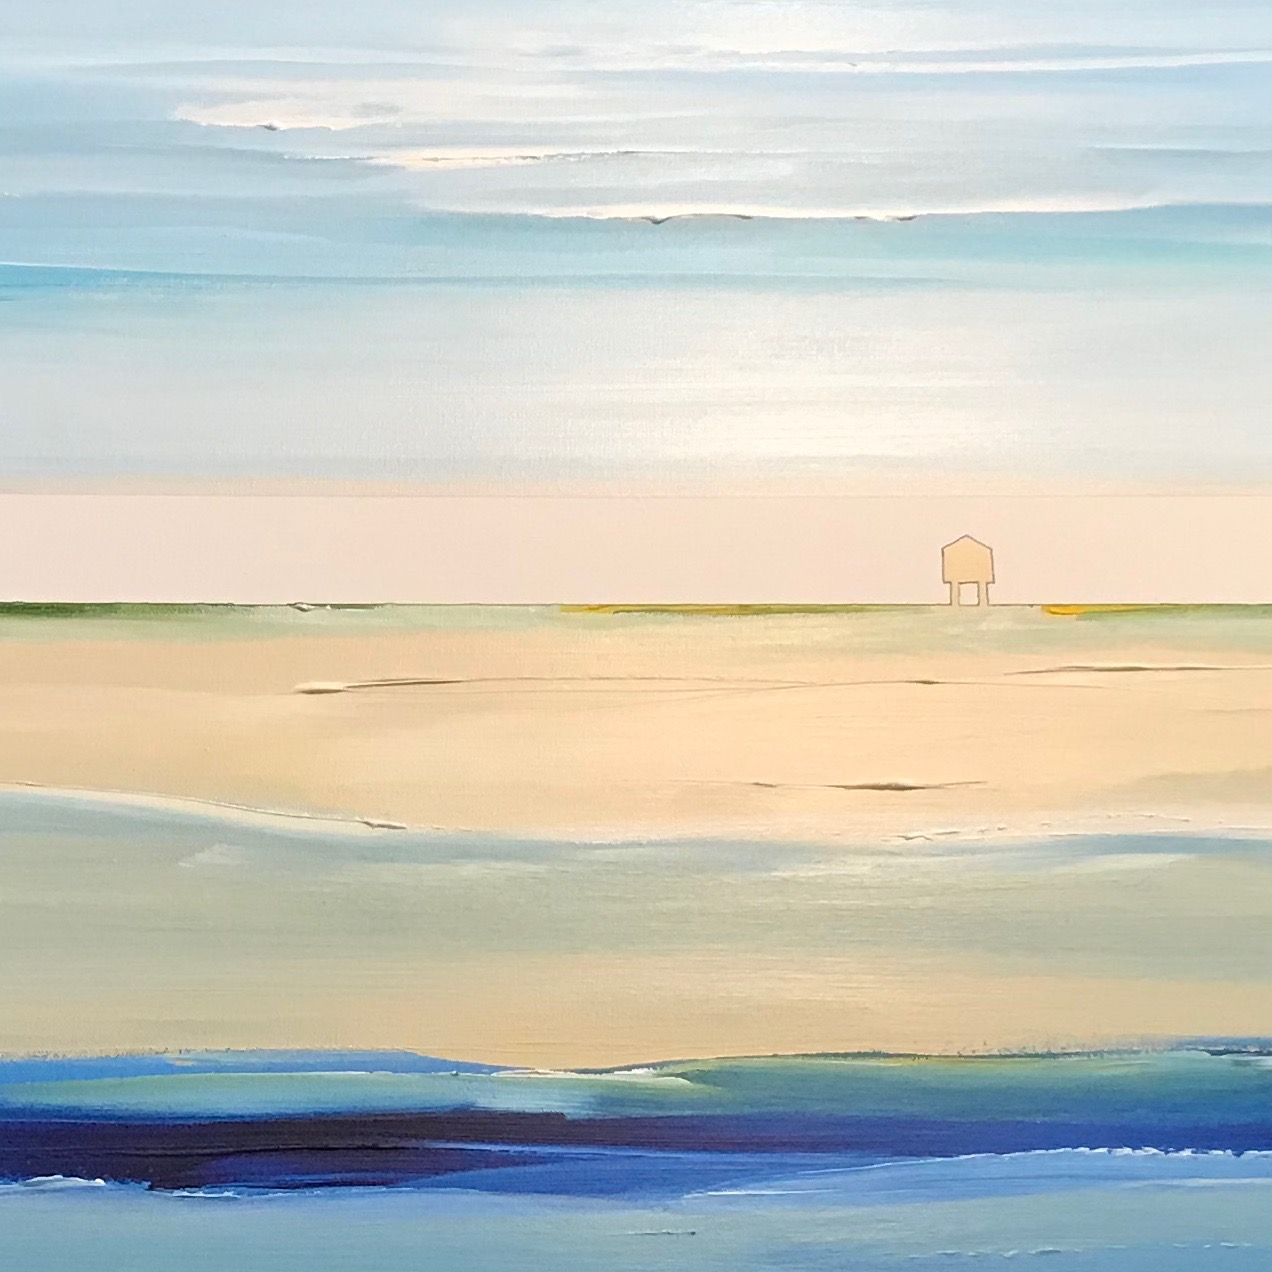 SILENT beach   |  beach 01.                                                acrylic on canvas 24 x 36 - nfs